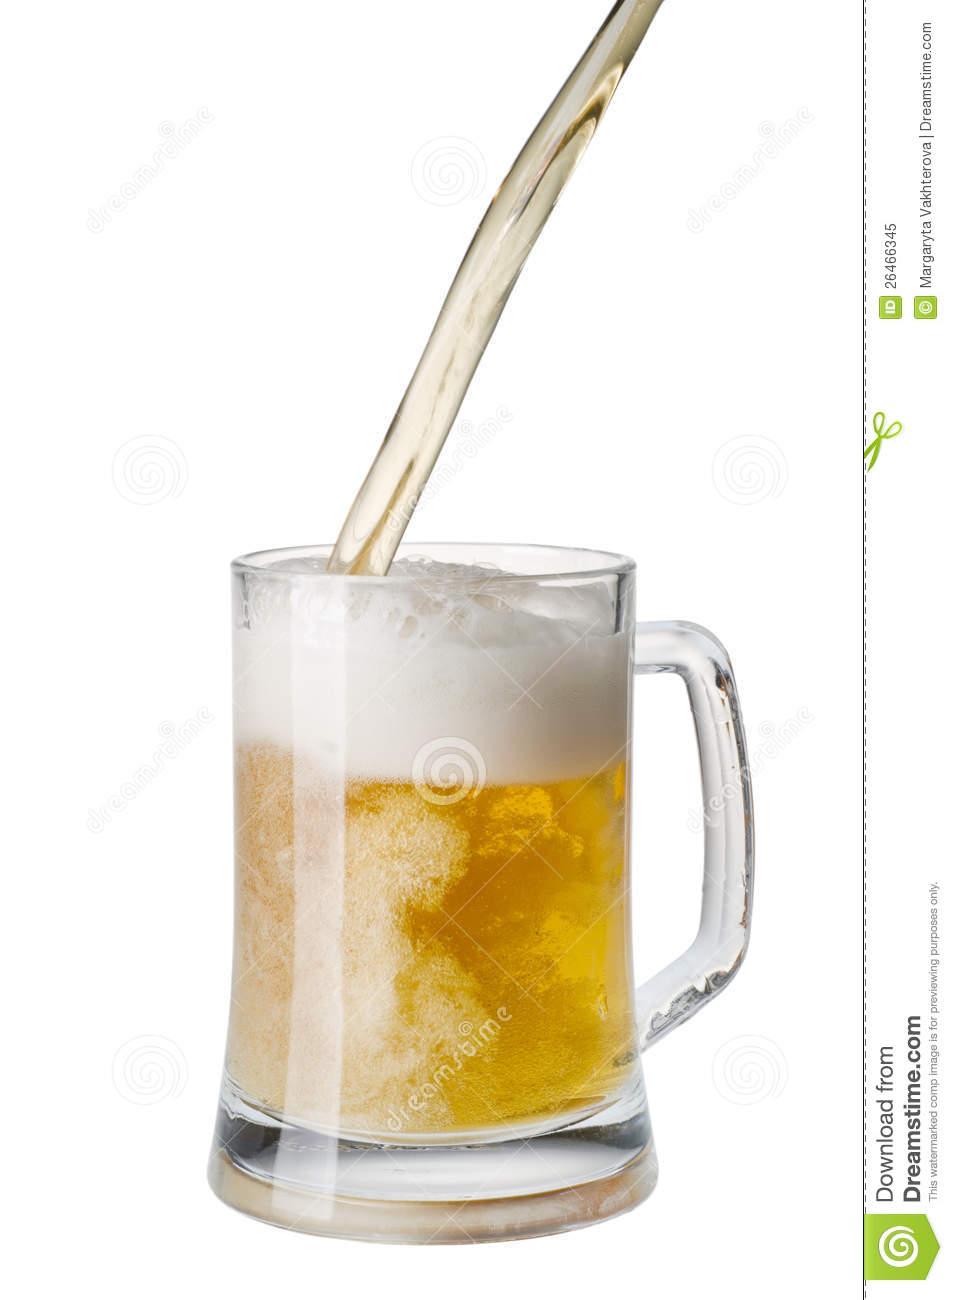 Beer being poured into a mug from a bottle